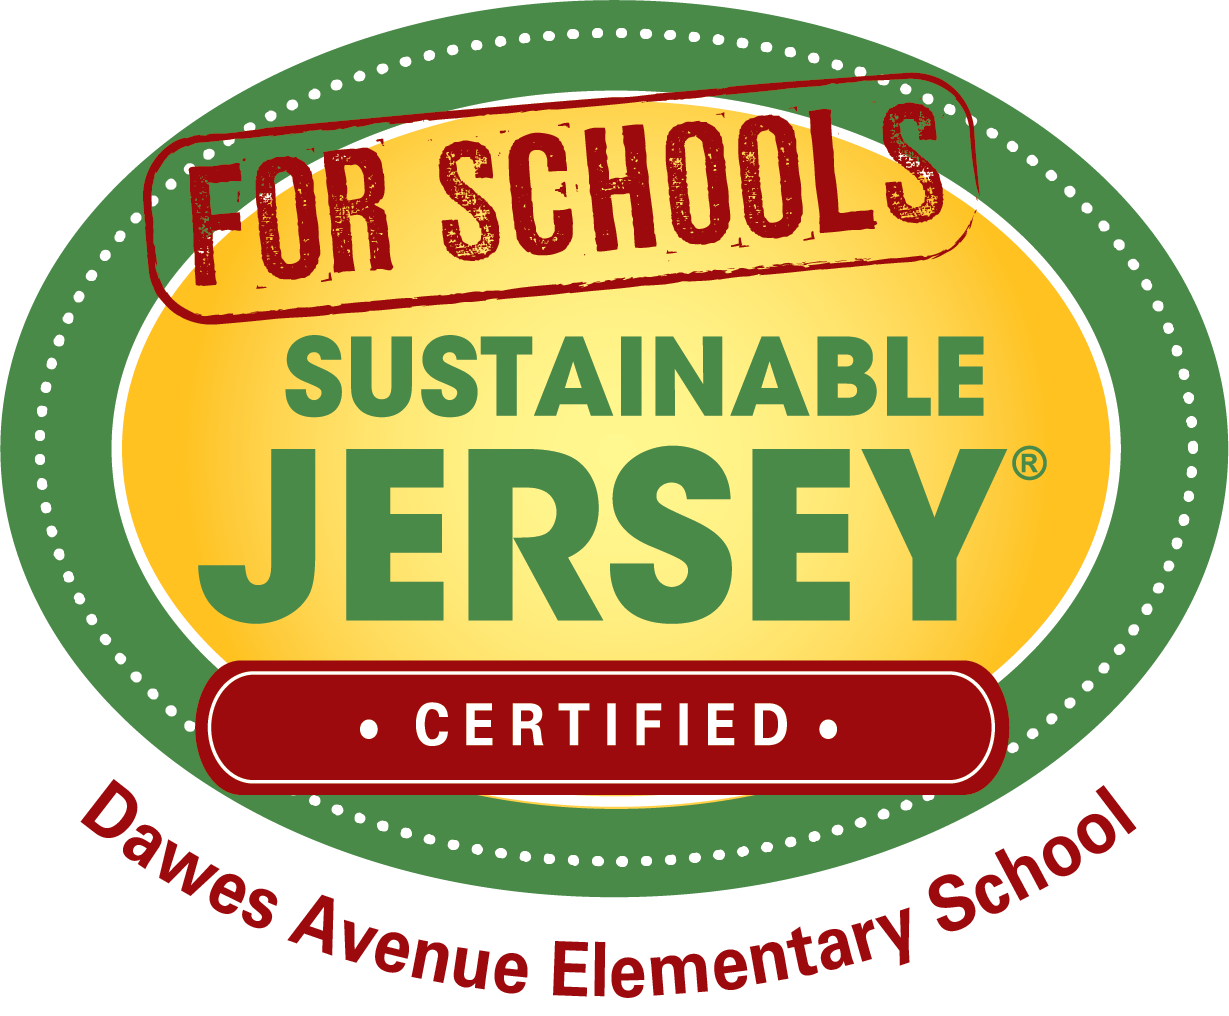 Sustainable School Certified